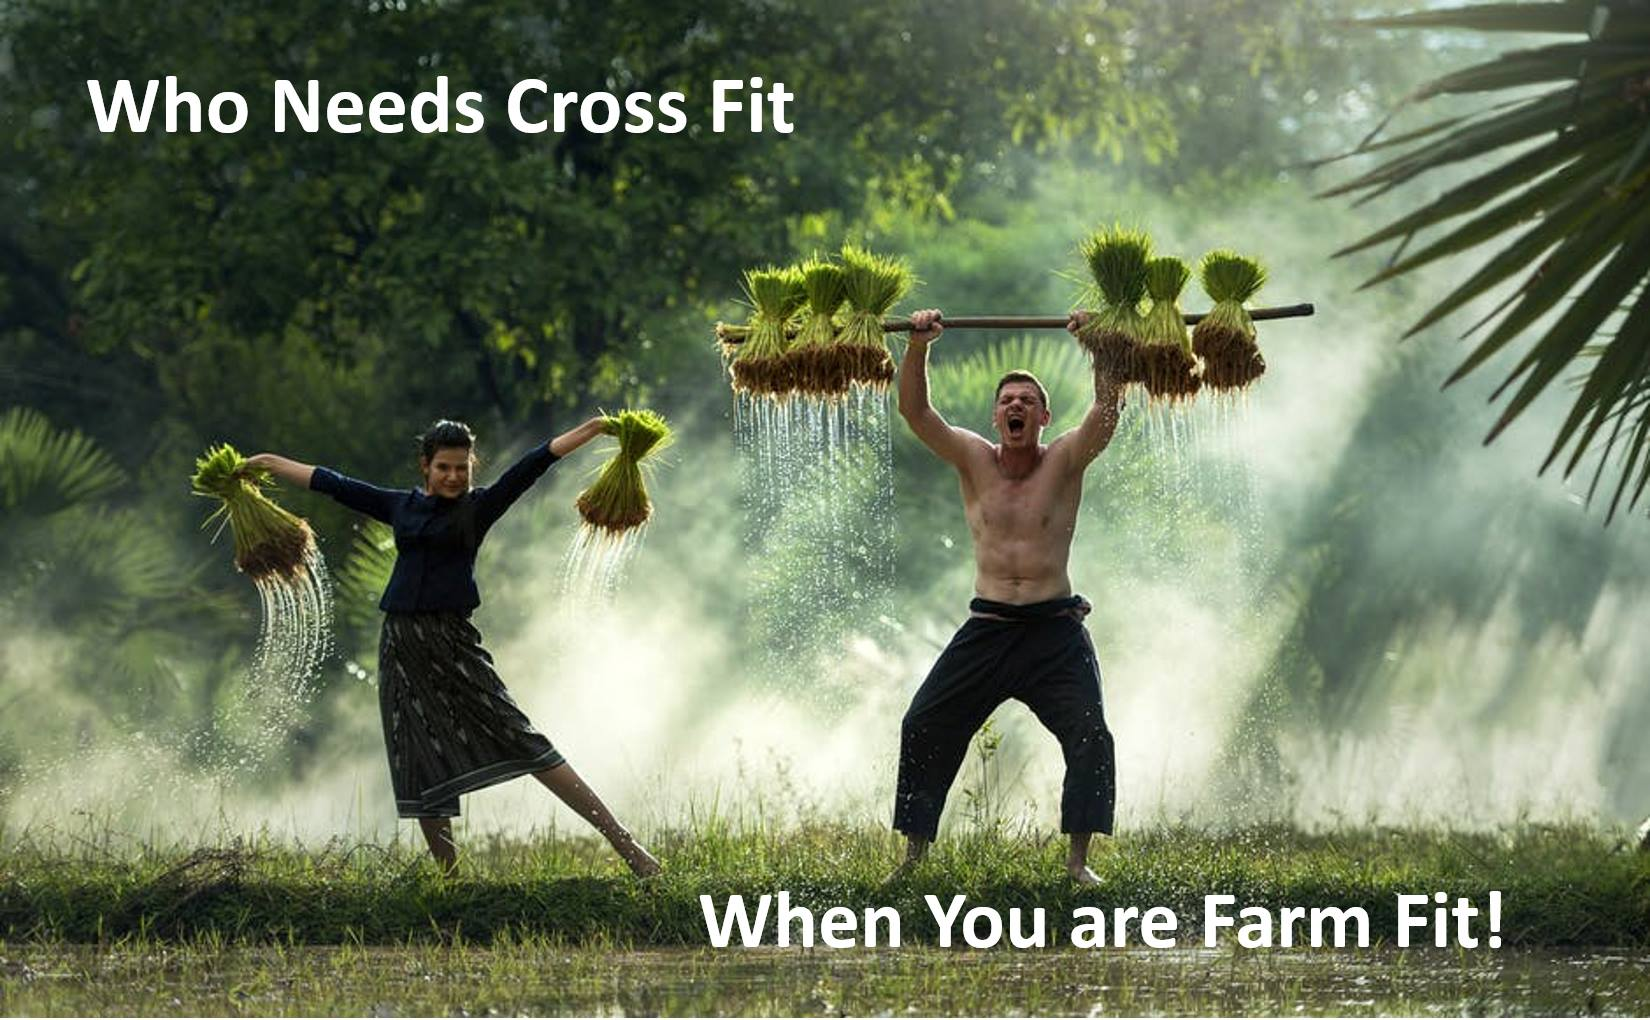 Who needs cross fit when you are farm fit!